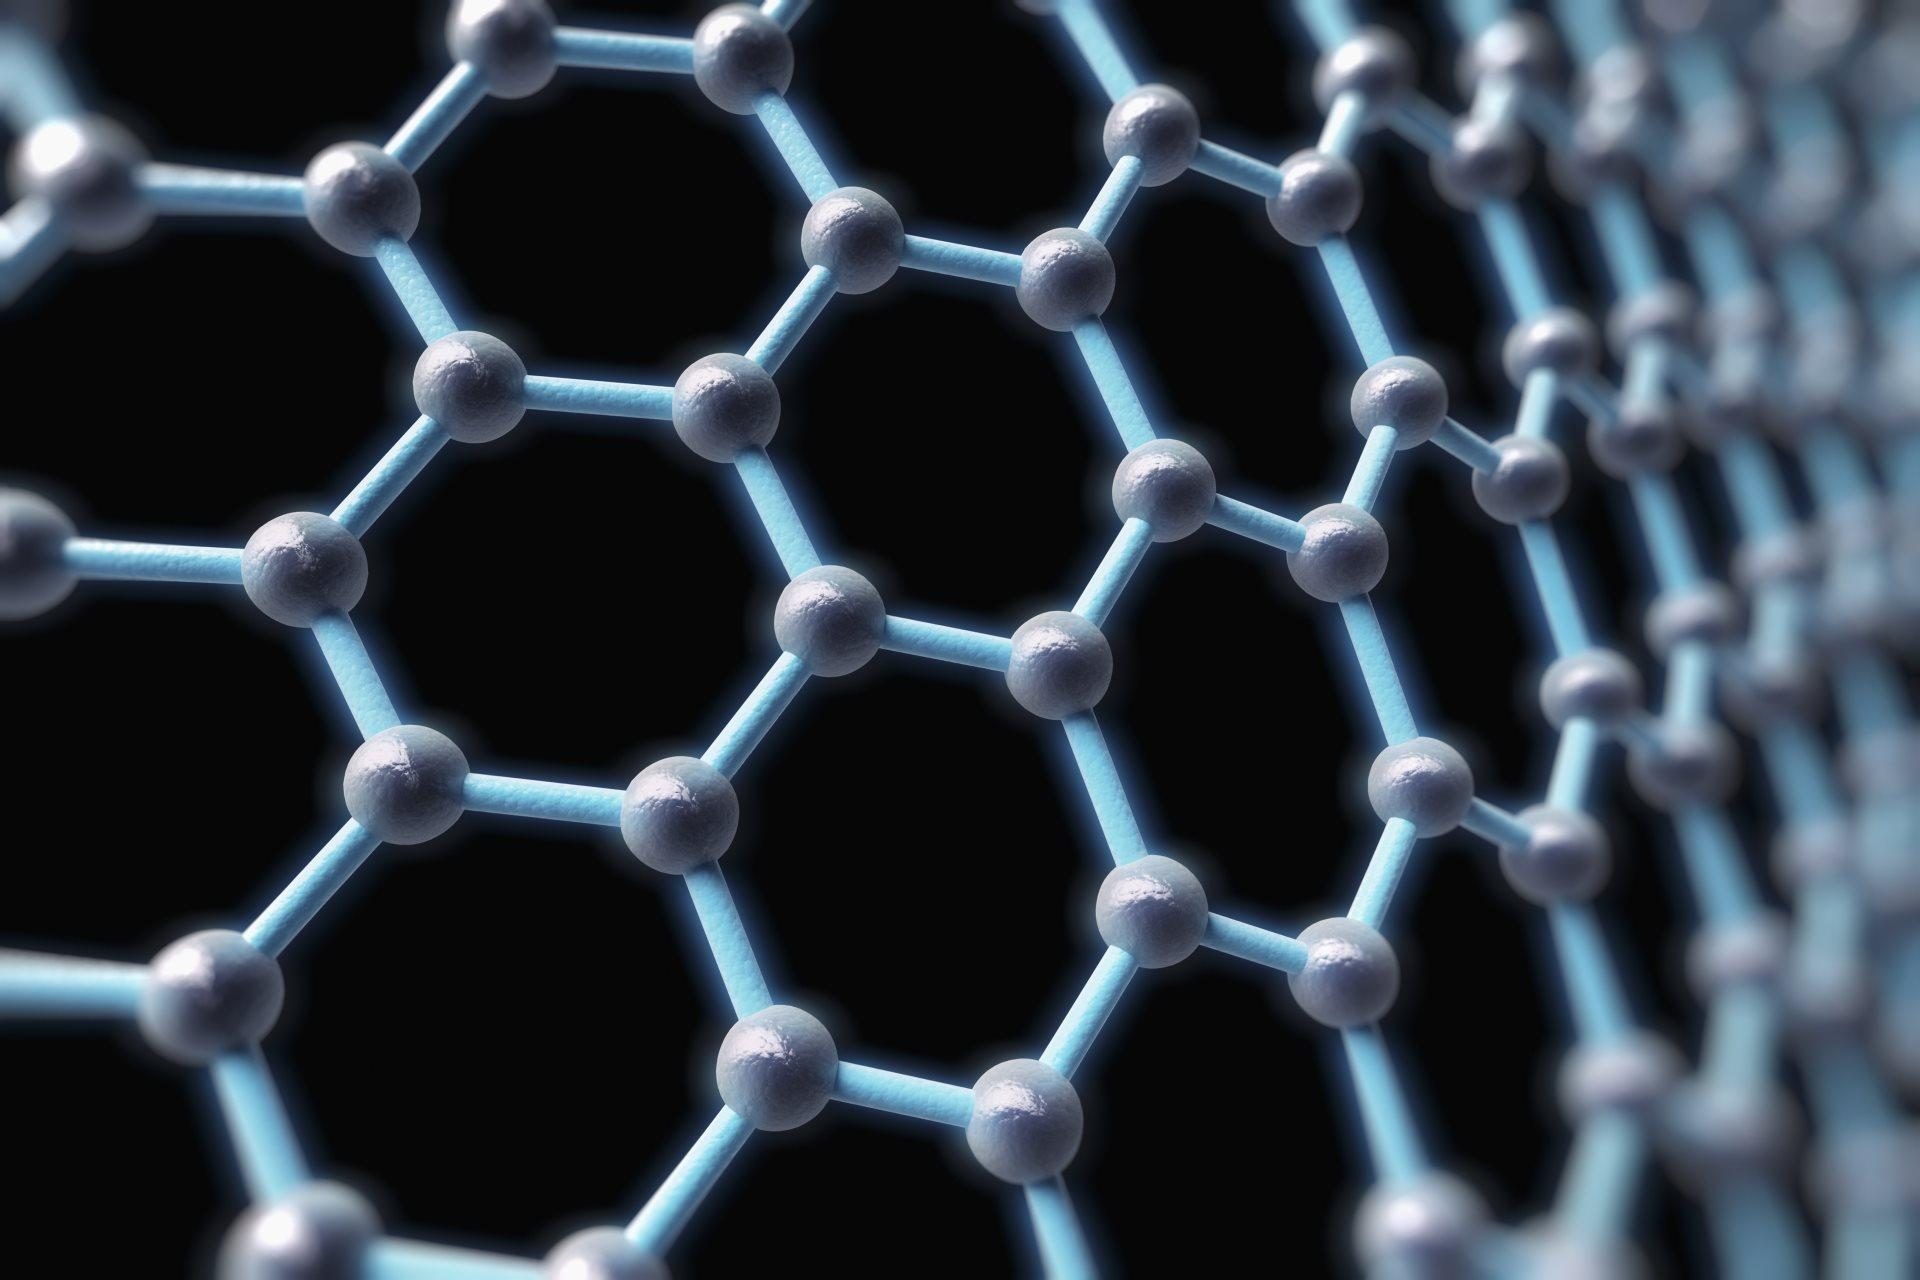 By luck, scientists discovered new way of mass producing graphene